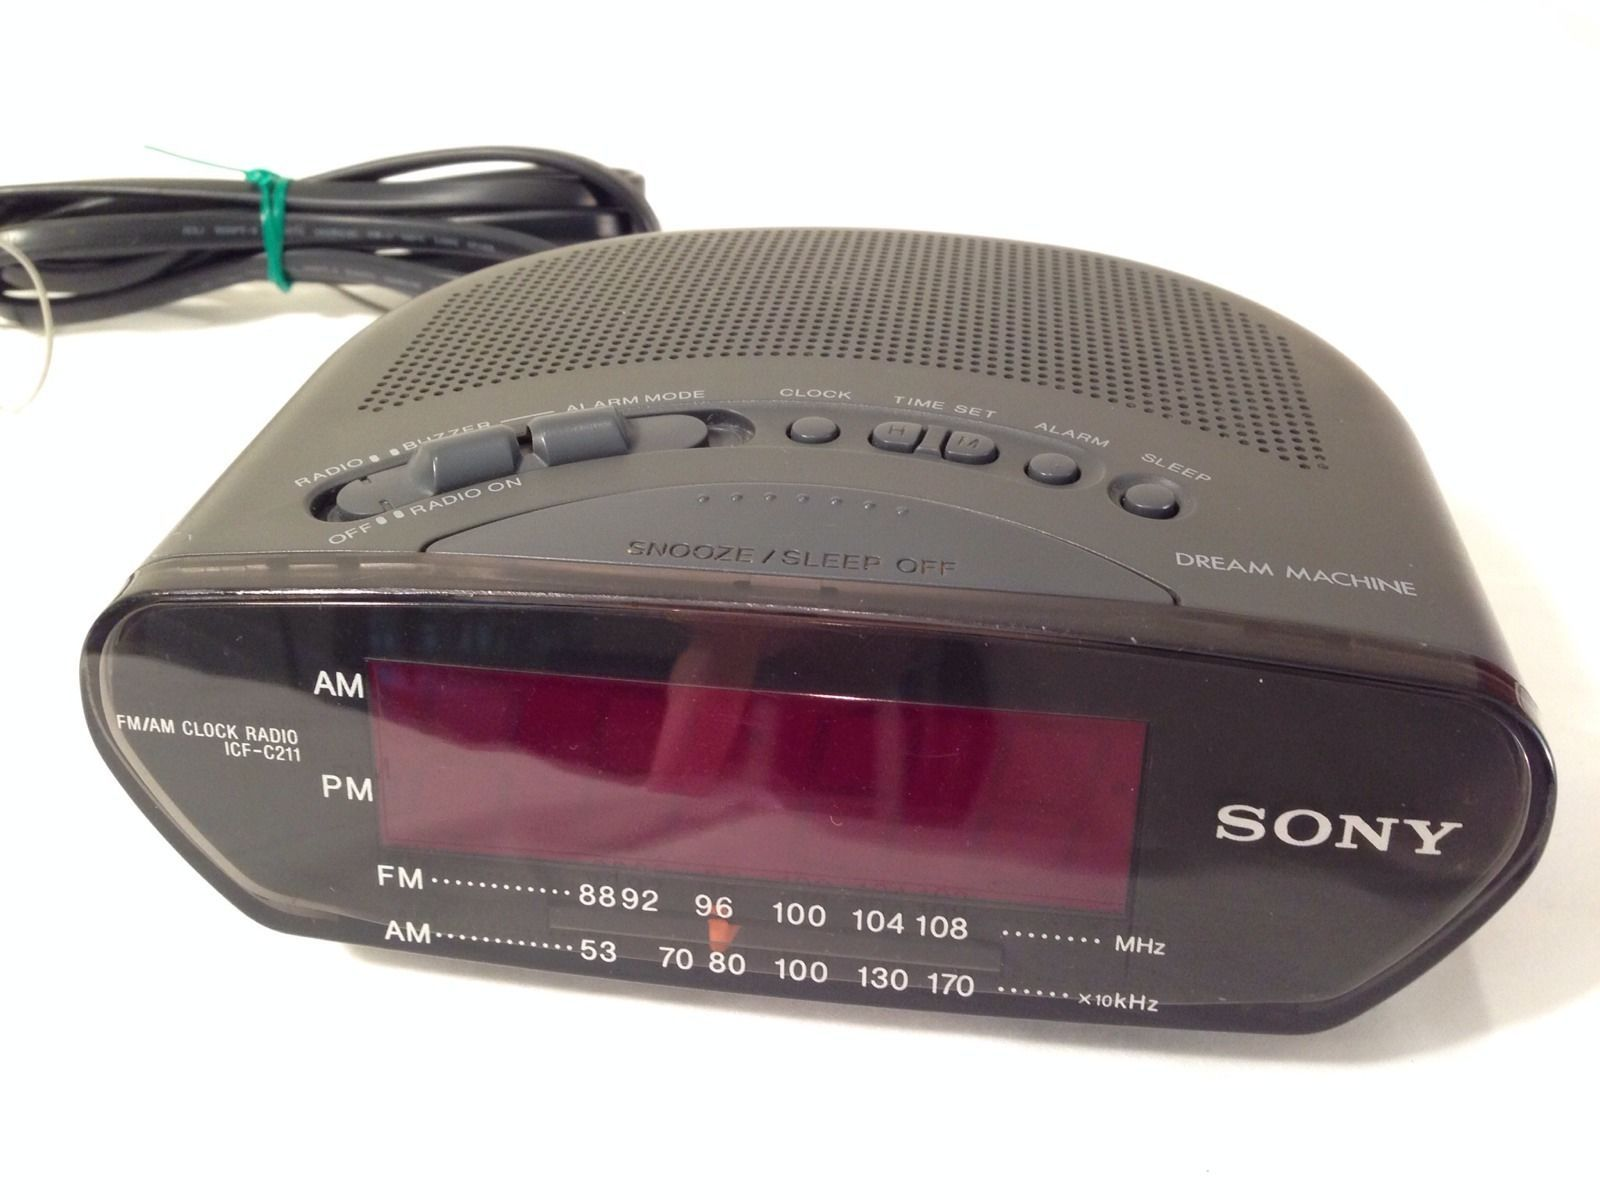 Big Display Sony Dream Machine ICF-C211 AM/FM Alarm Clock Radio Red Digital